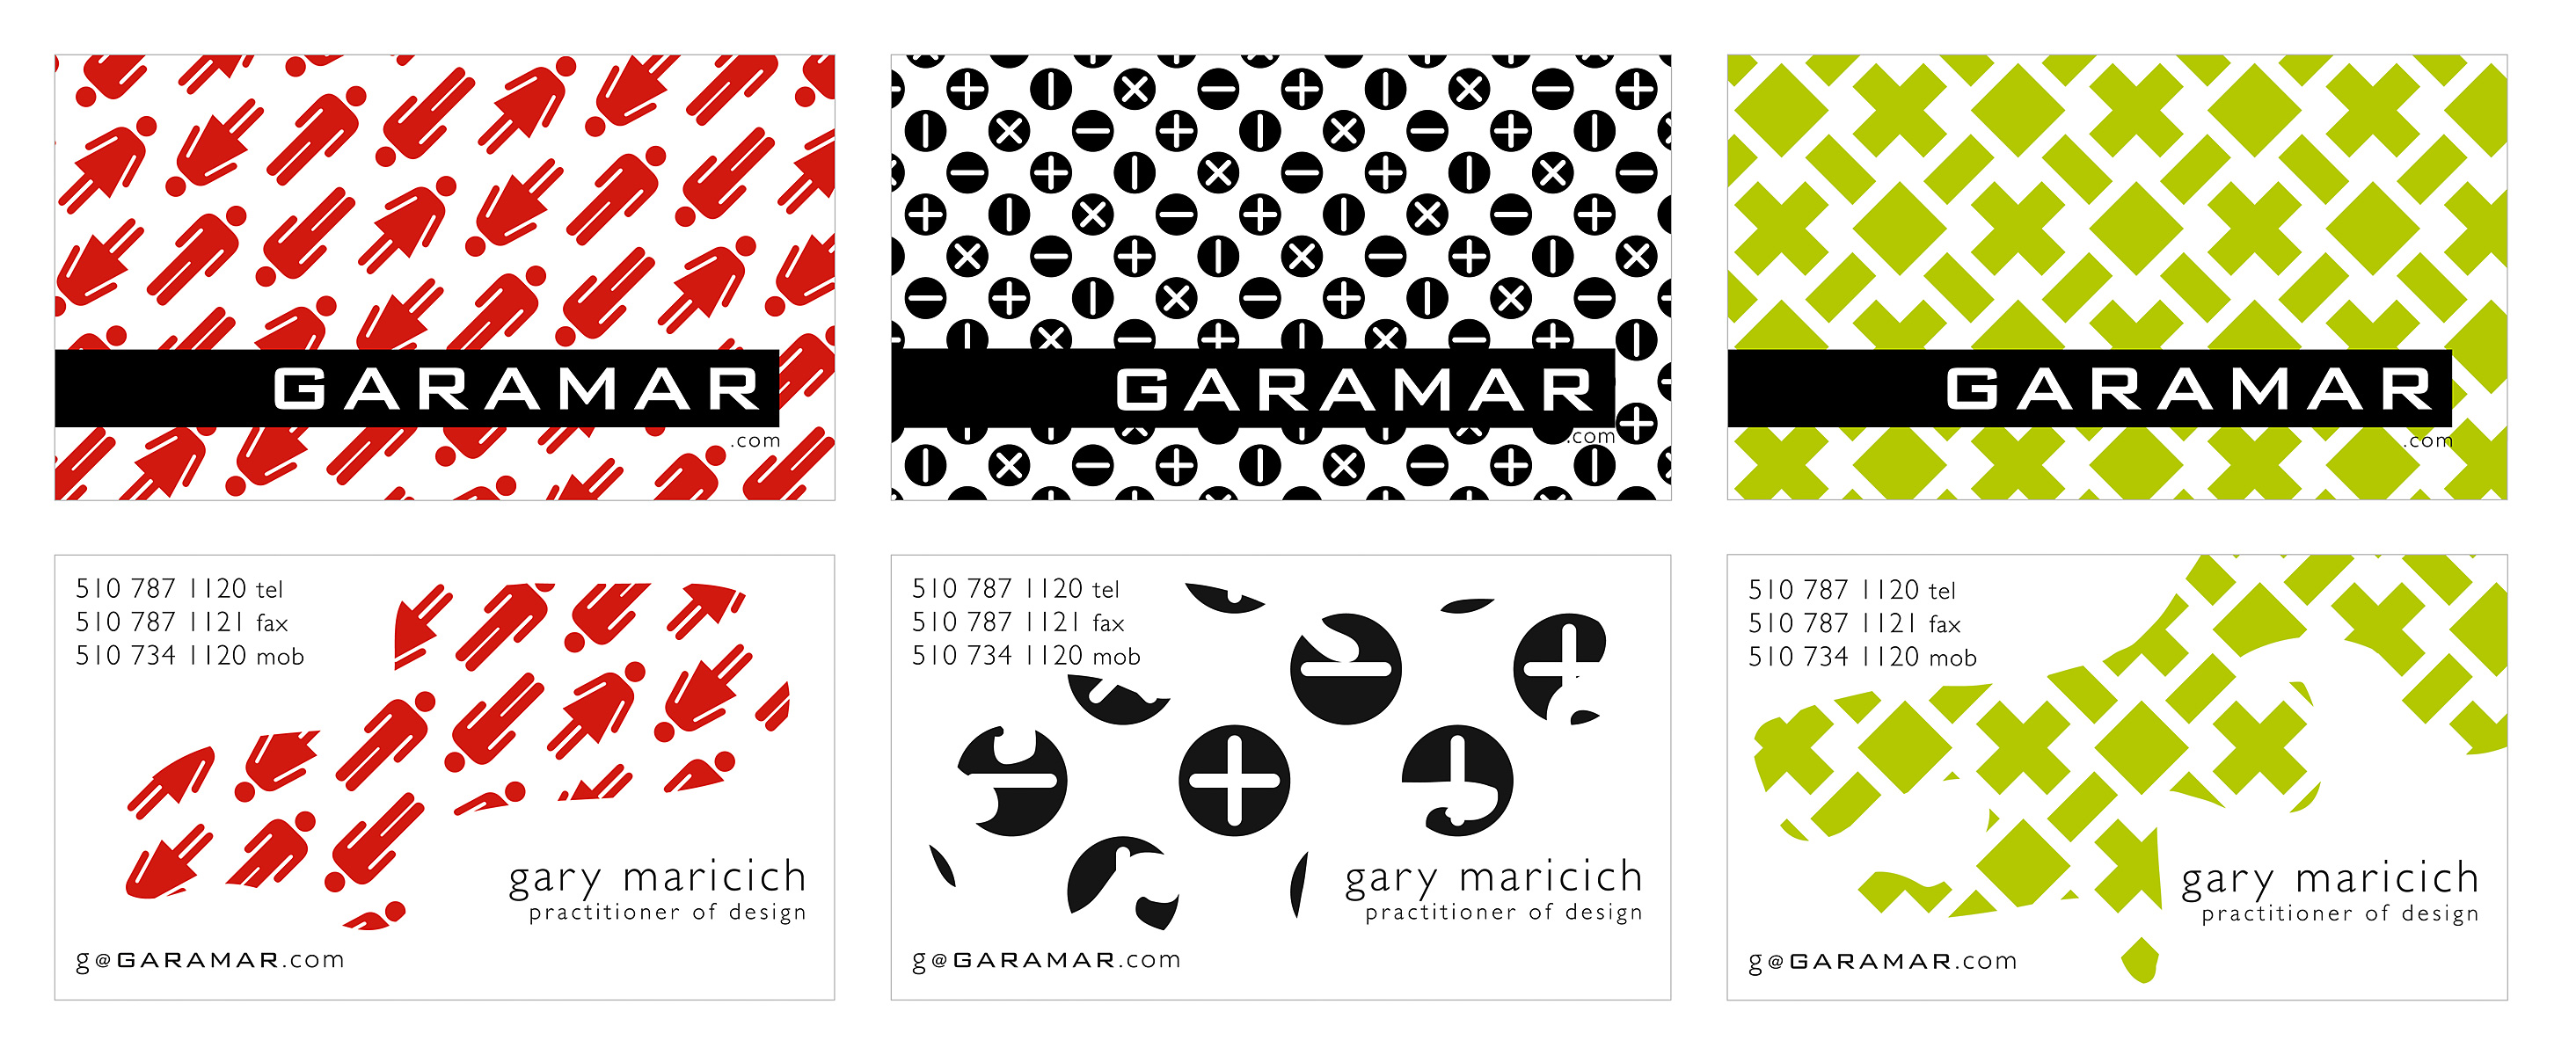 GARAMAR-biz_cards-boy_girlcrossesscrews-design